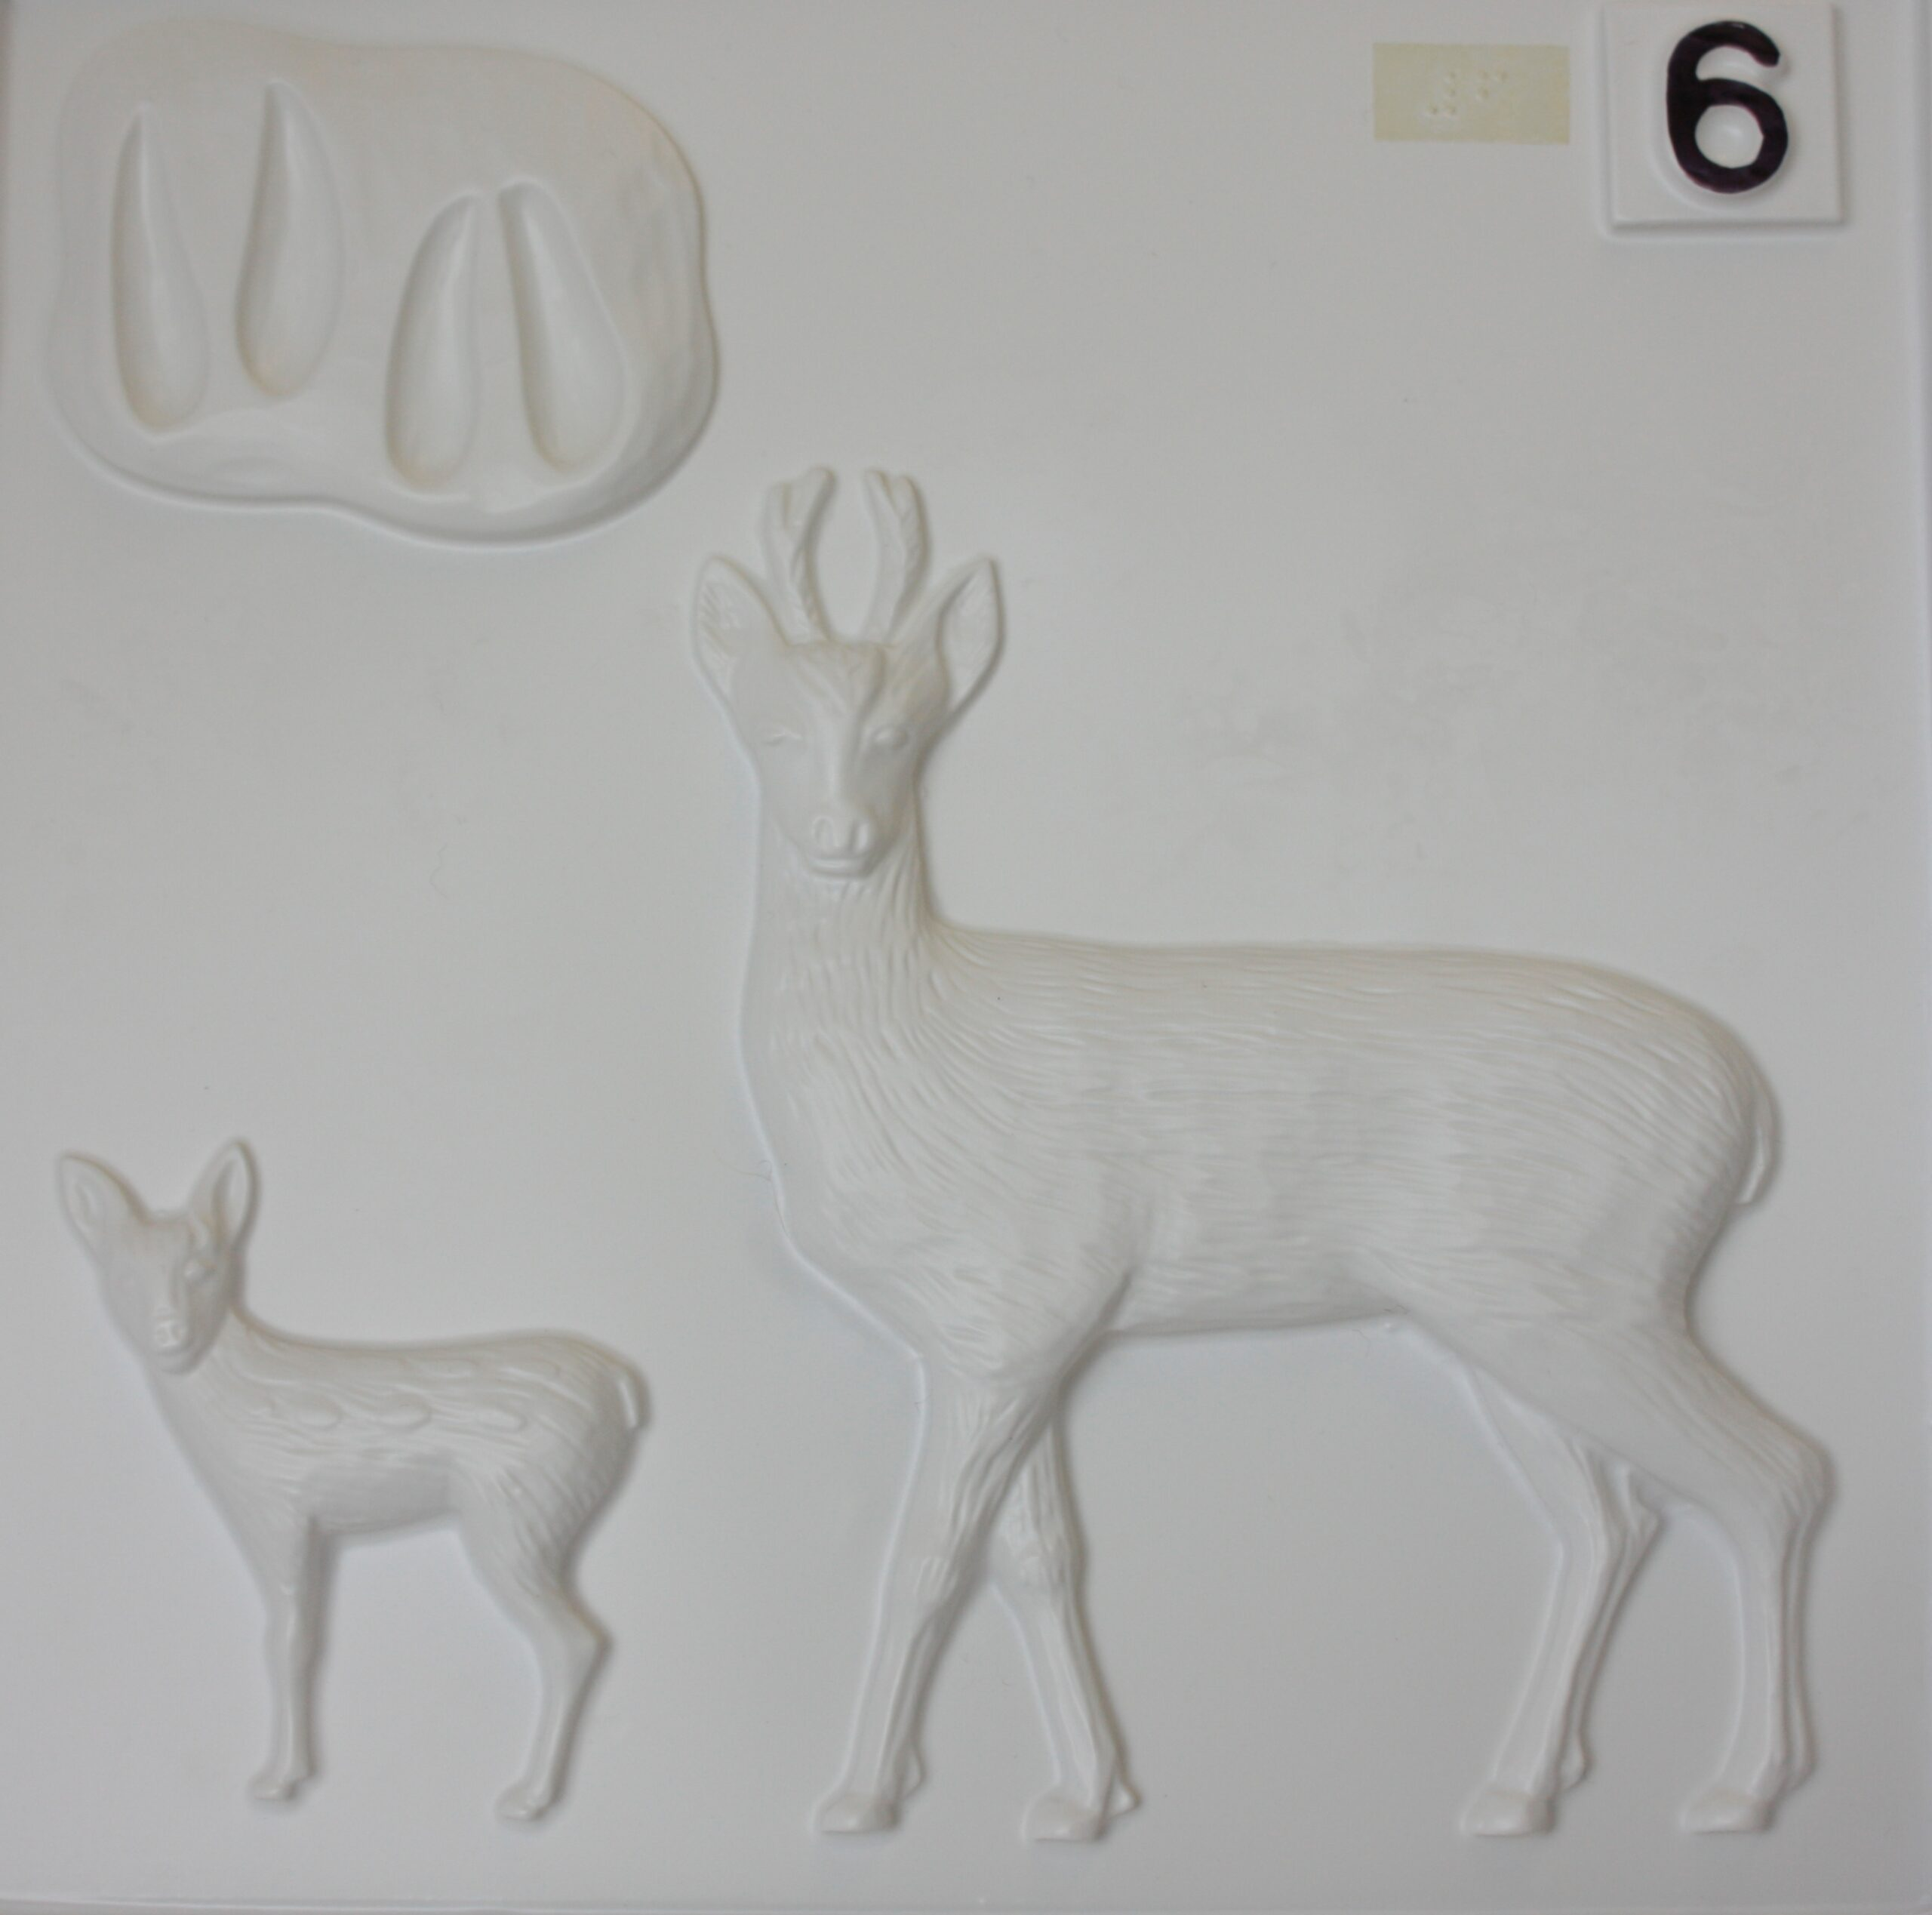 Roe deer tactile image from Living Paintings British Wildlife